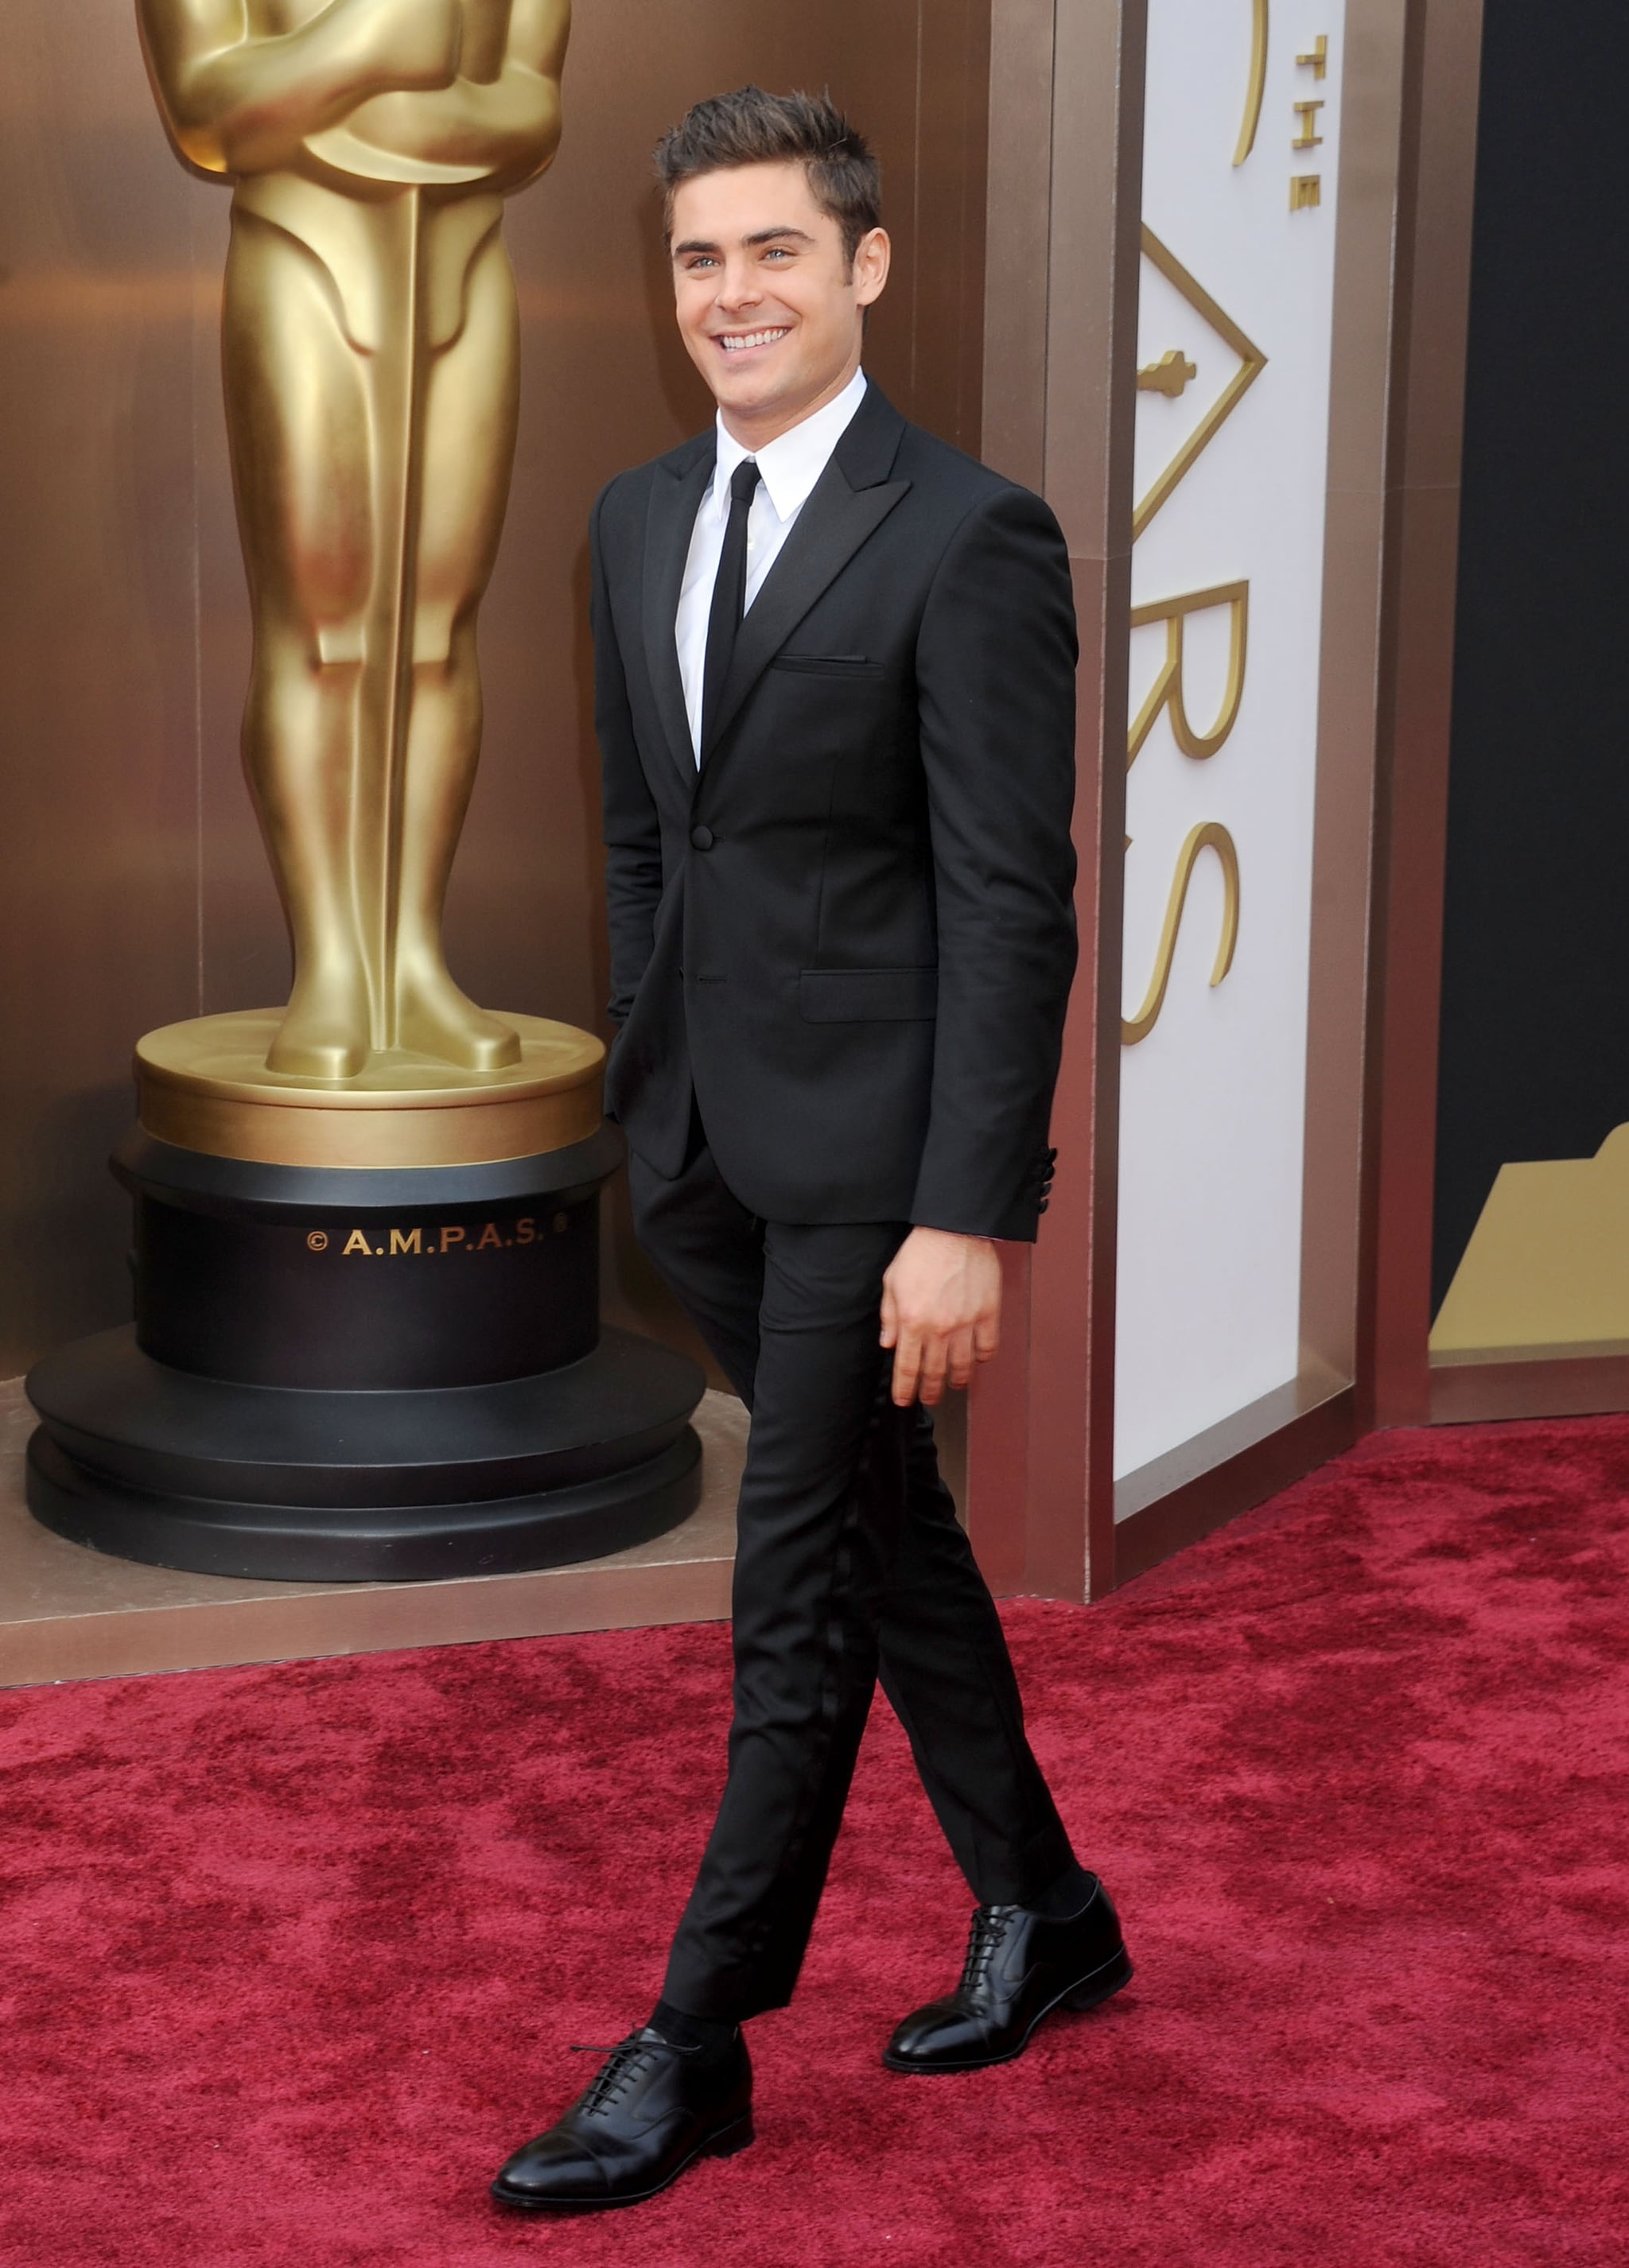 Though when he dressed up for the Oscars, we crushed even harder.